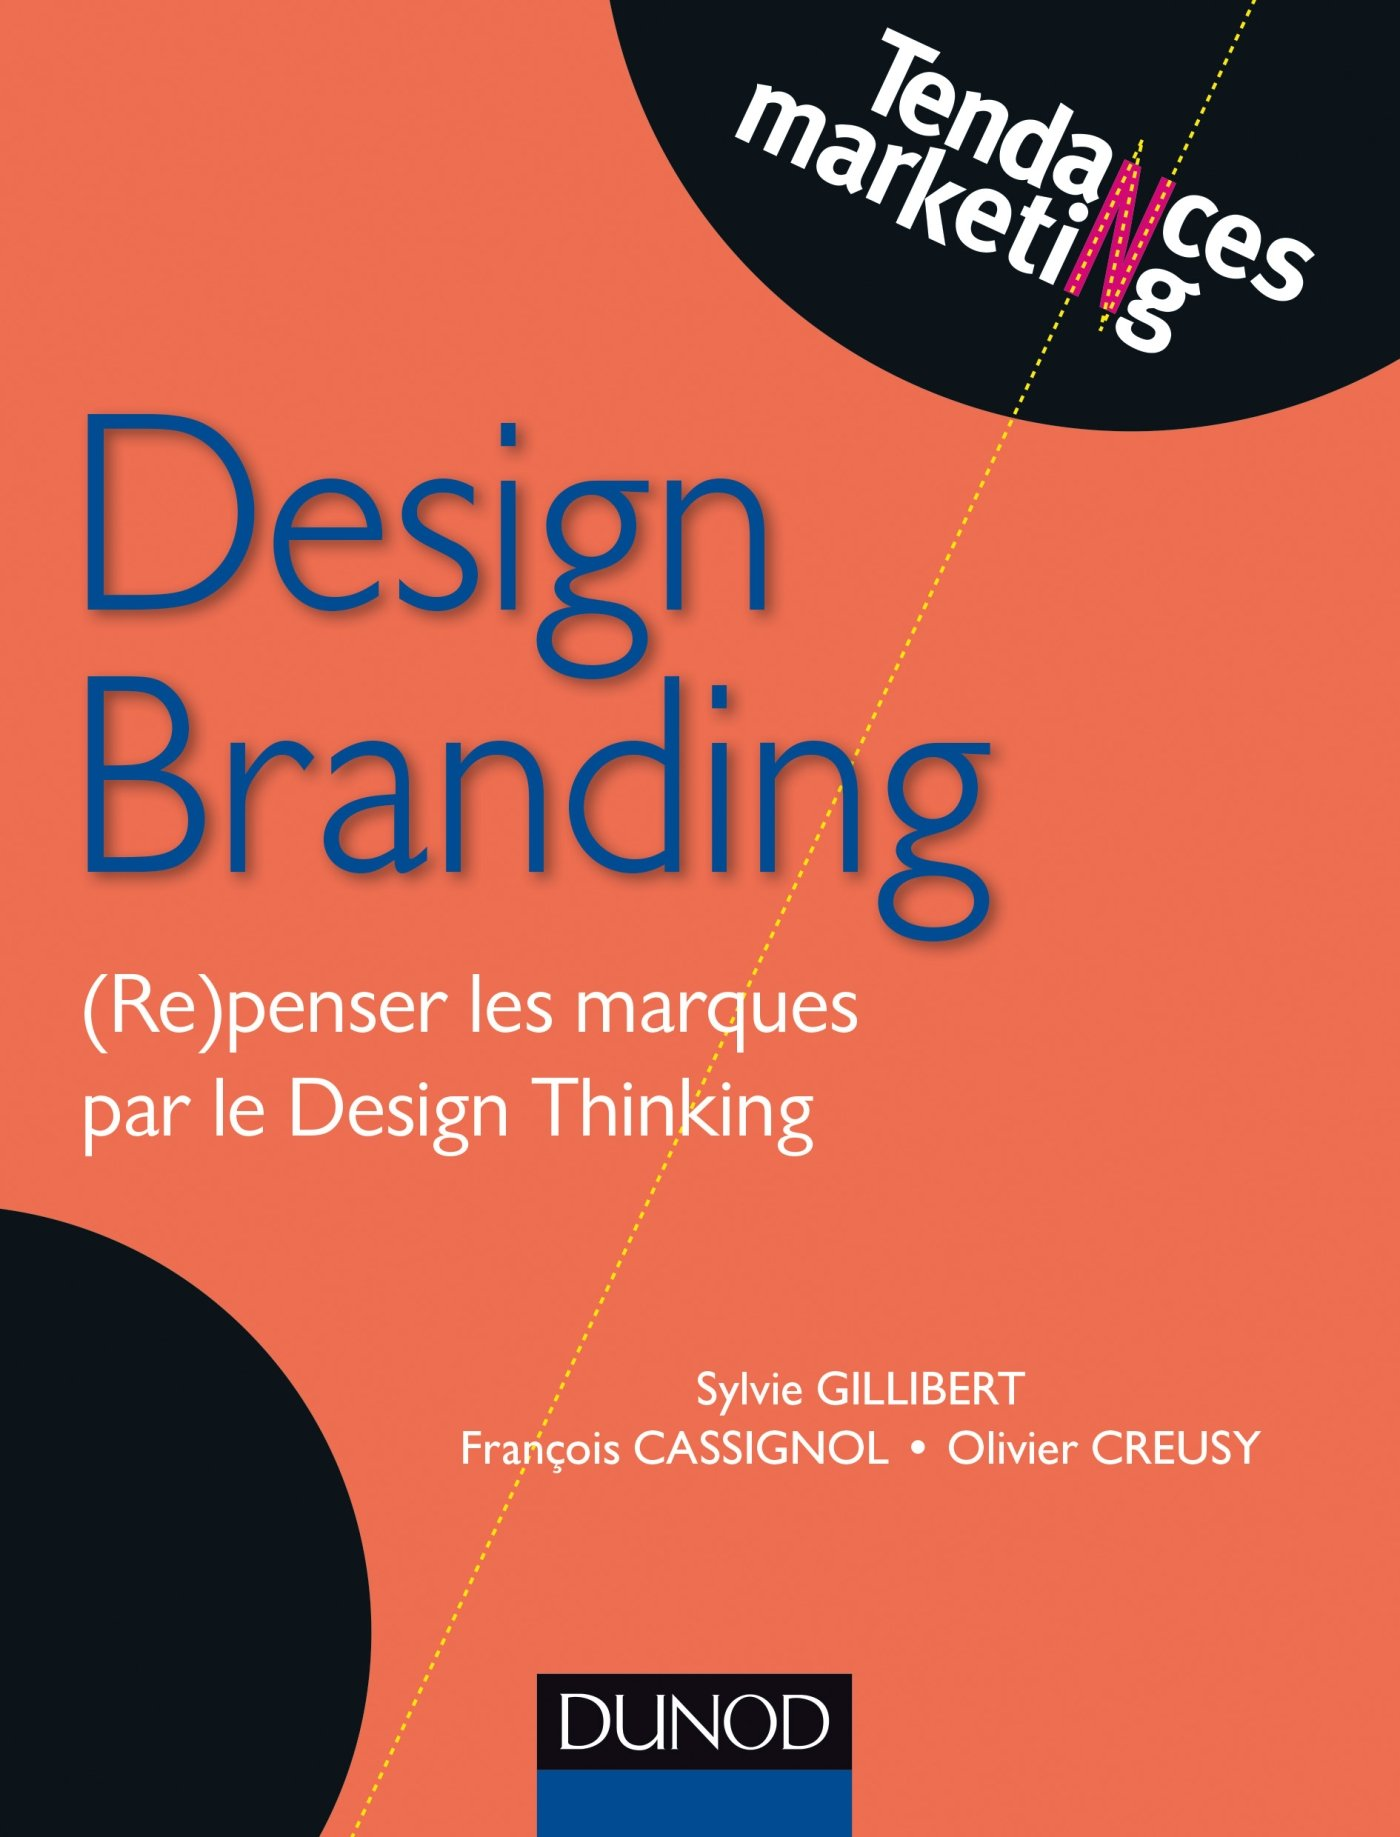 télécharger Design Branding : (Re)penser les marques par le Design Thinking